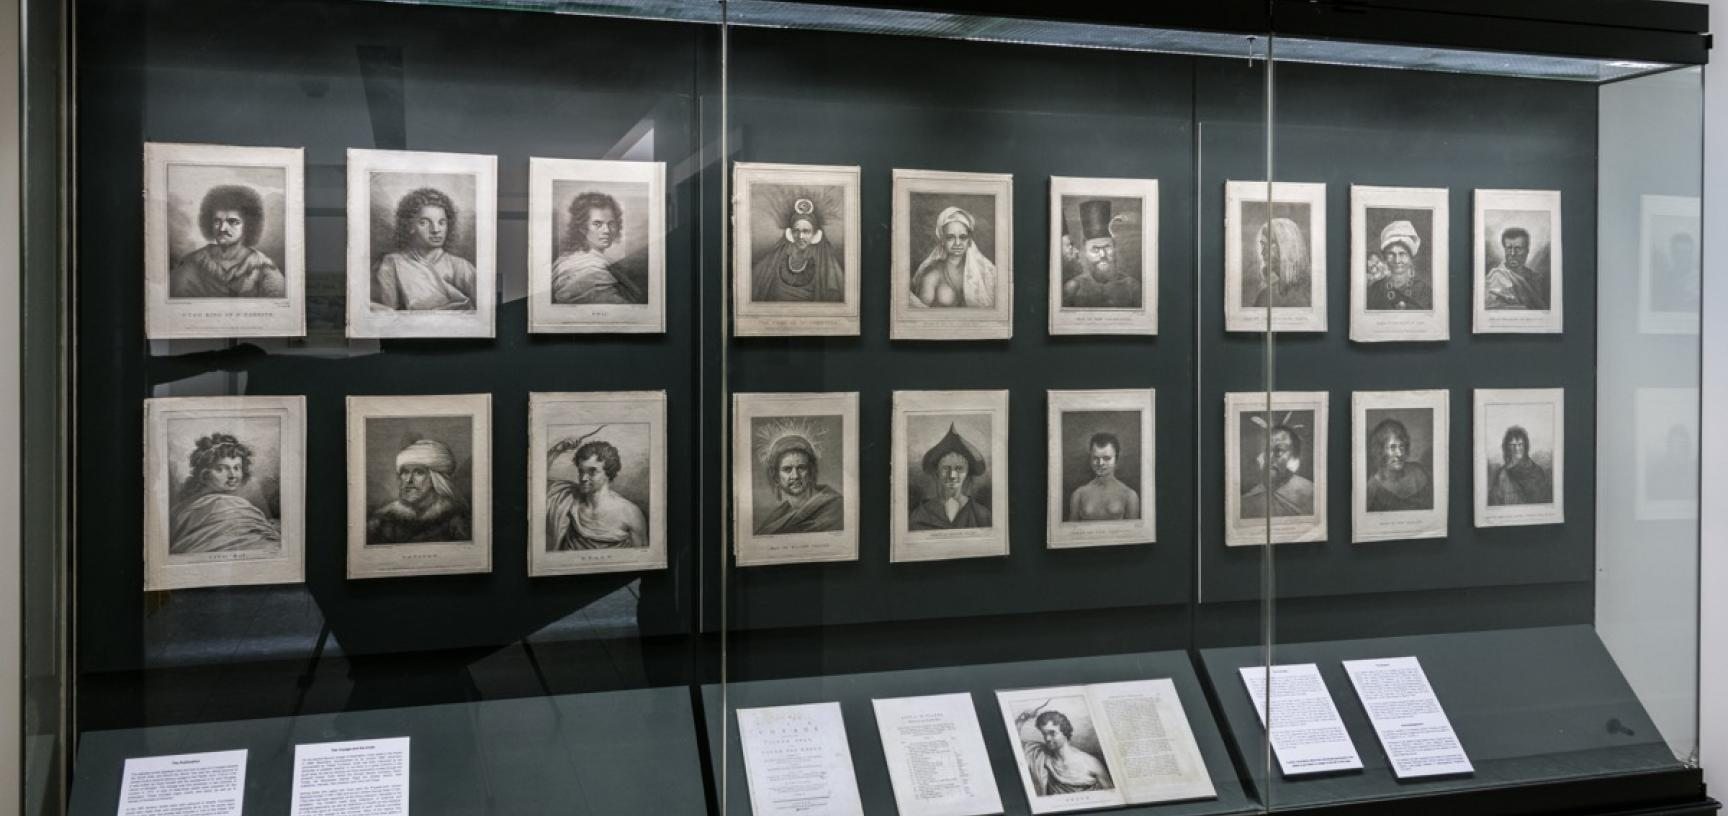 "'""A Variety of Portraits of Persons"": From the Official Account of Cook's Second Voyage to the Pacific (1772–1775)', Pitt Rivers Museum, University of Oxford, 28 May to 23 September 2018. (Copyright Pitt Rivers Museum, University of Oxford)"